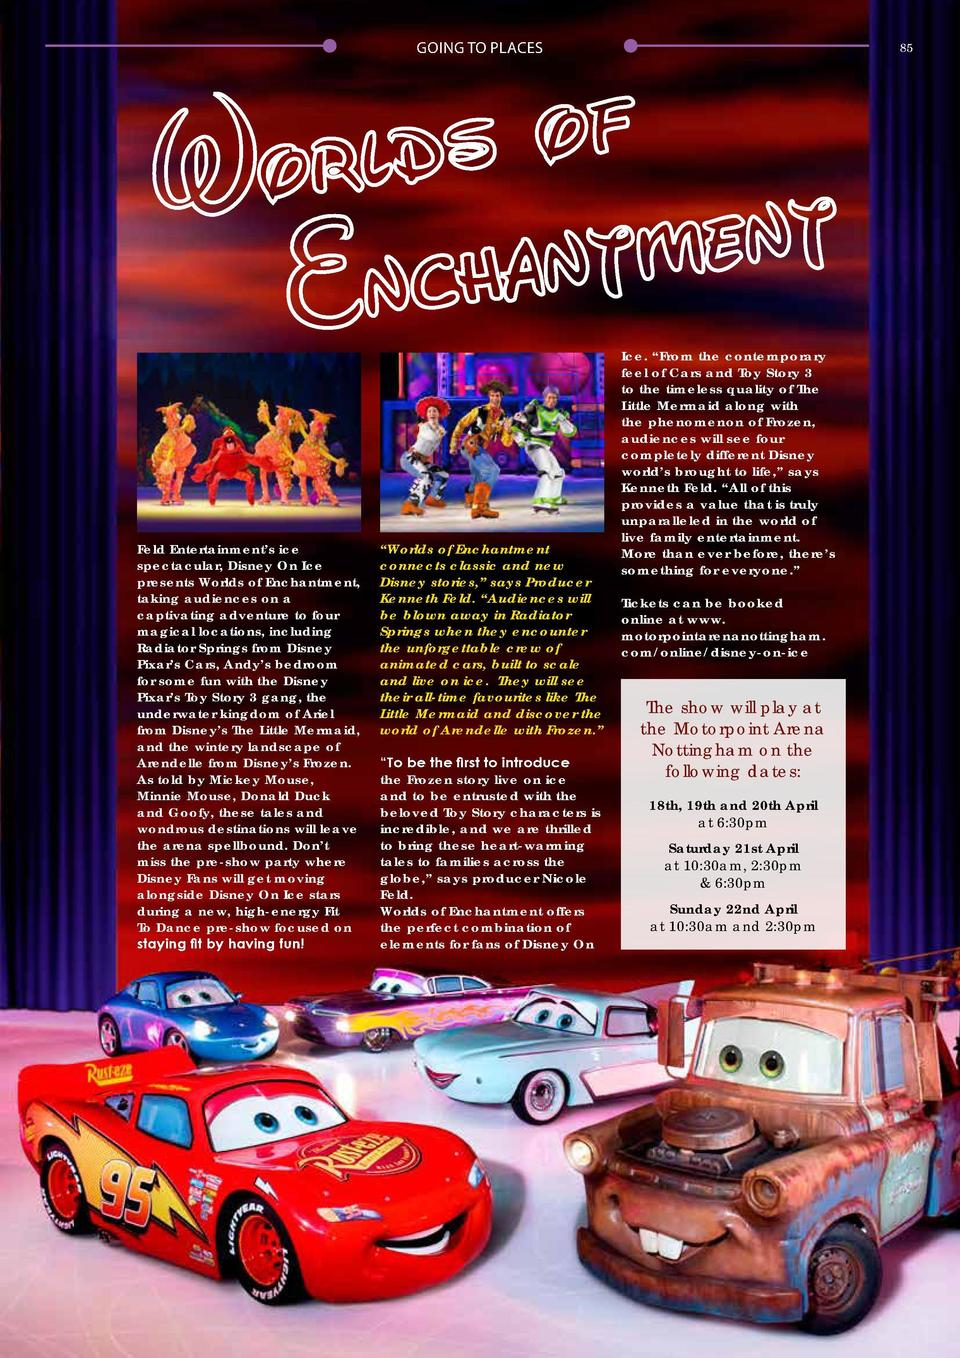 84  GOING TO PLACES  GOING TO PLACES  Feld Entertainment   s ice spectacular, Disney On Ice presents Worlds of Enchantment...